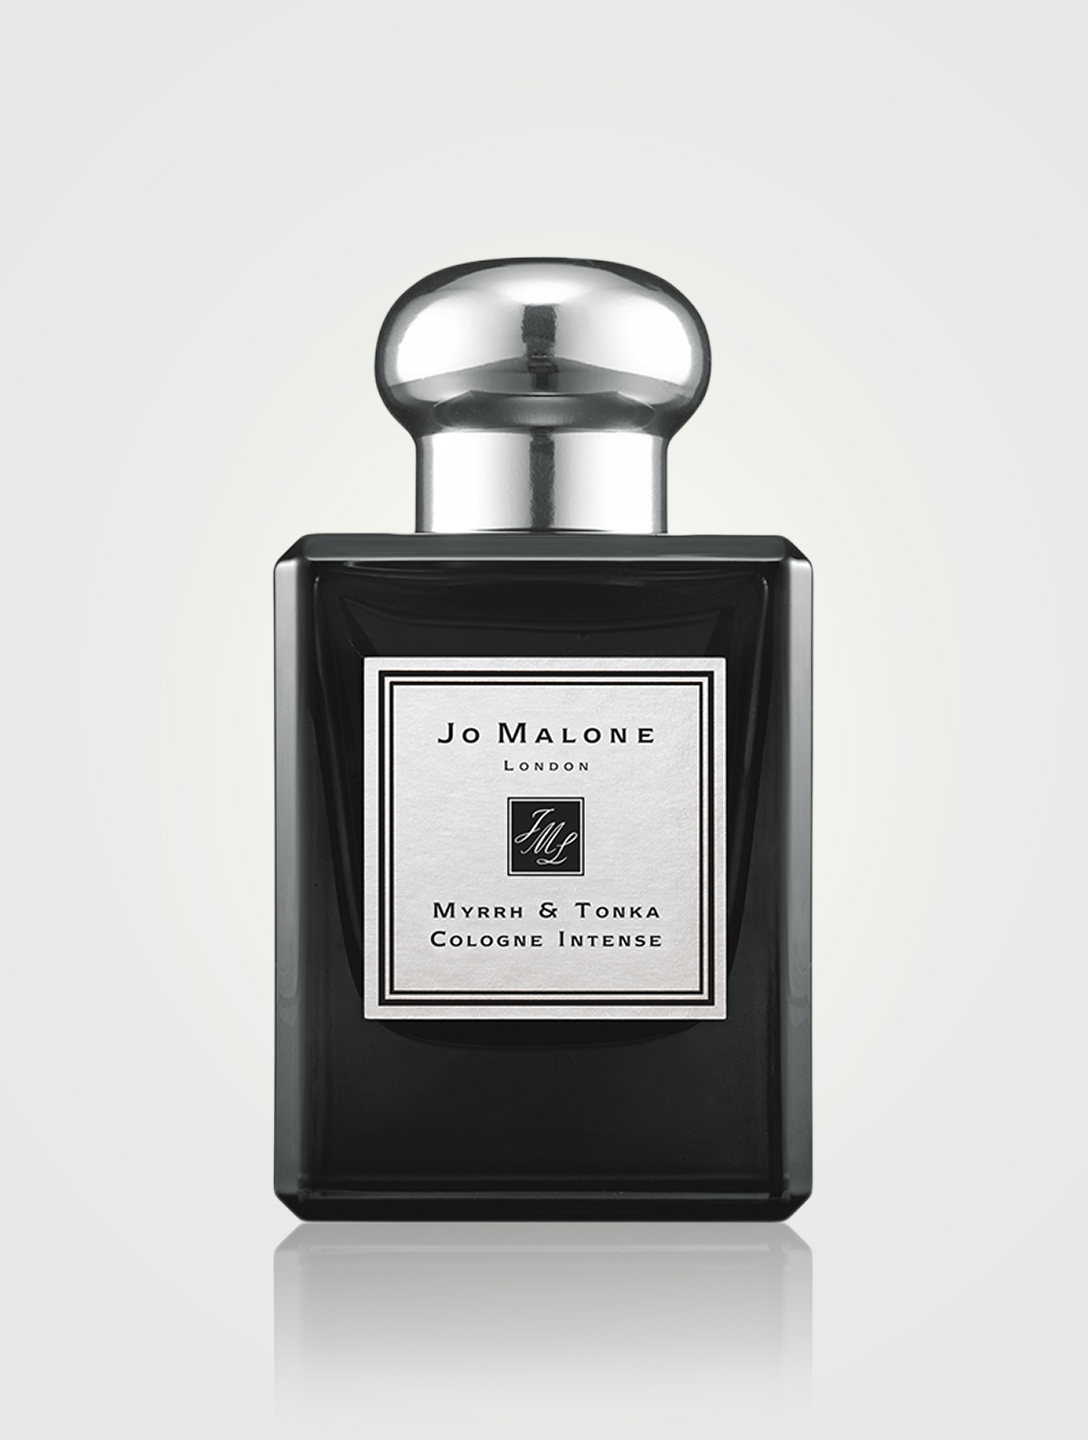 JO MALONE LONDON Myrrh & Tonka Cologne Intense Beauty